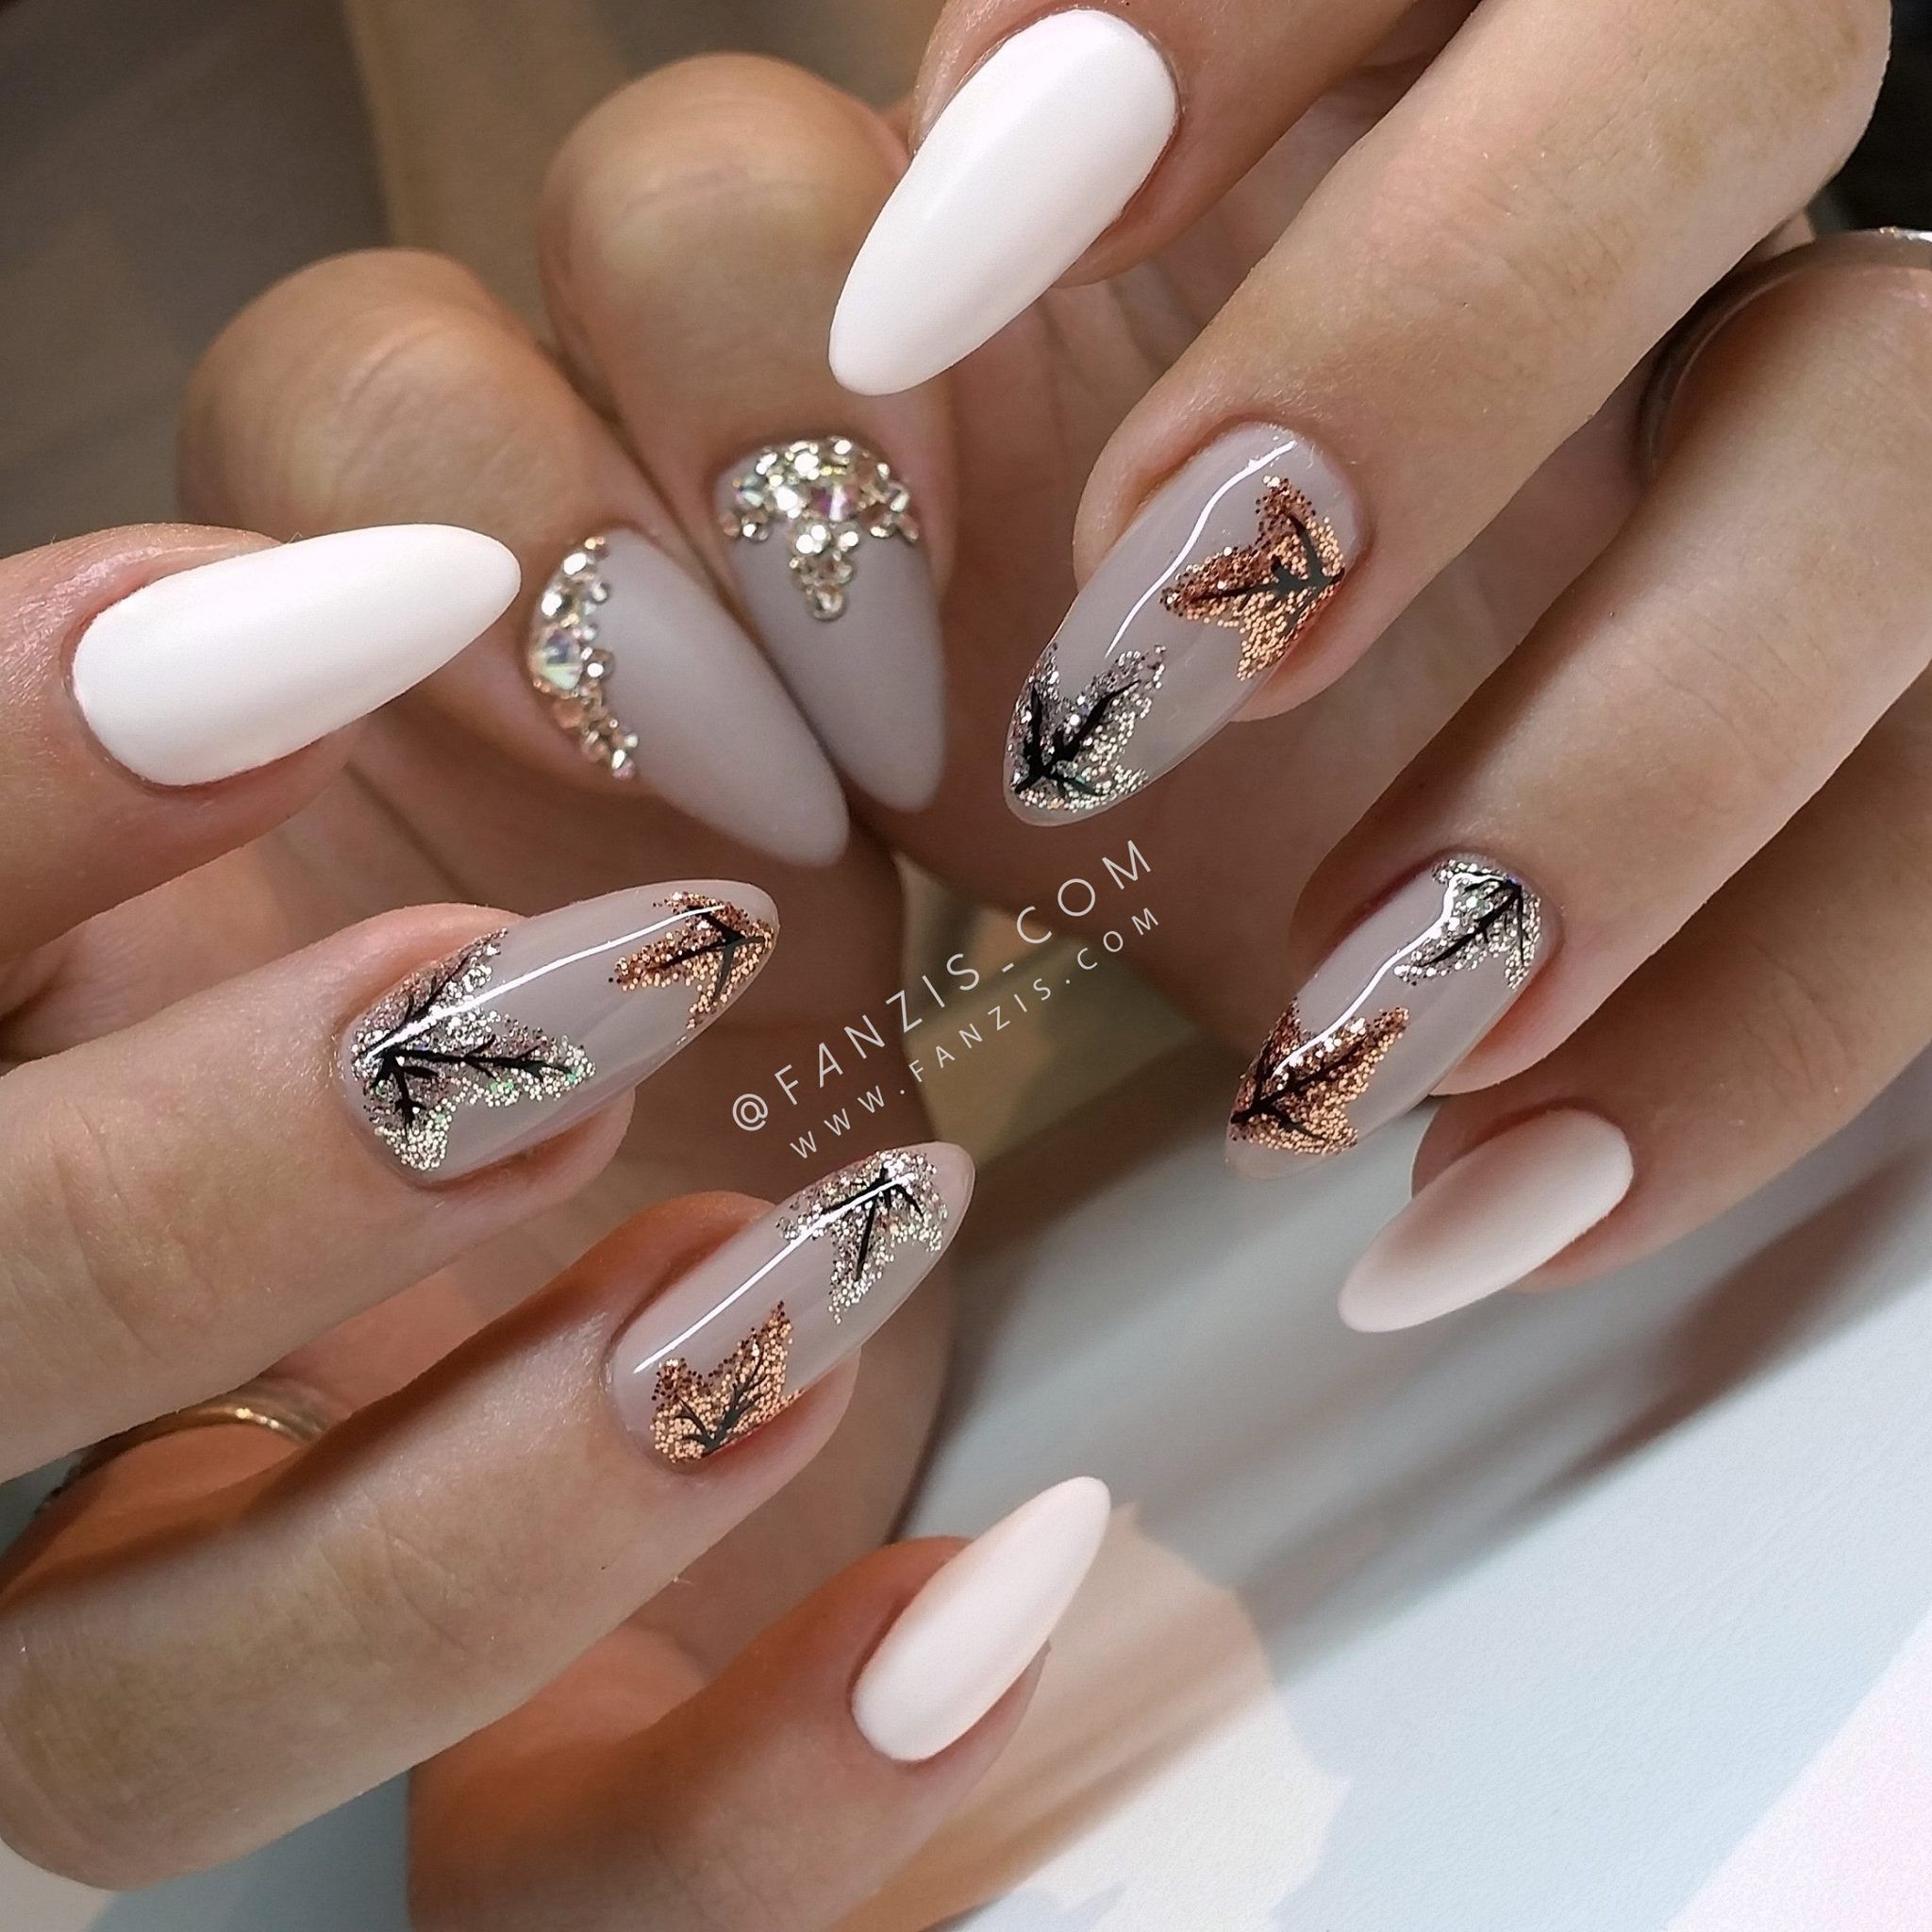 Fall nails - Nails | Pinterest - Nagel, Gelnagels en Herfst nagels